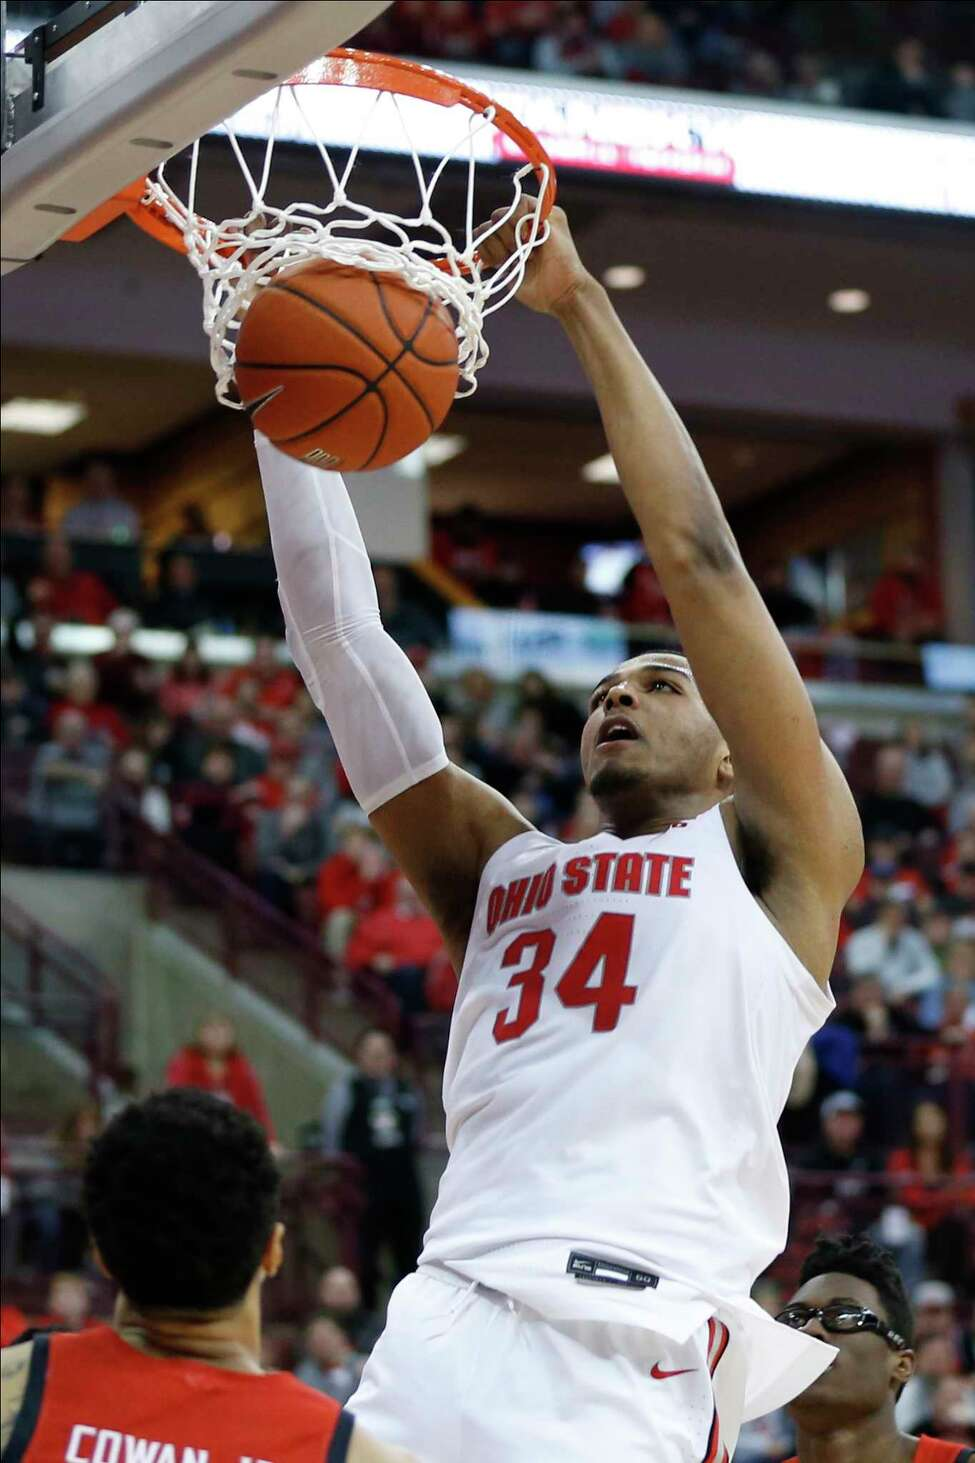 Ohio State's Kaleb Wesson dunks the ball against Maryland during the second half of an NCAA college basketball game Sunday, Feb. 23, 2020, in Columbus, Ohio. Ohio State defeated Maryland 79-72. (AP Photo/Jay LaPrete)